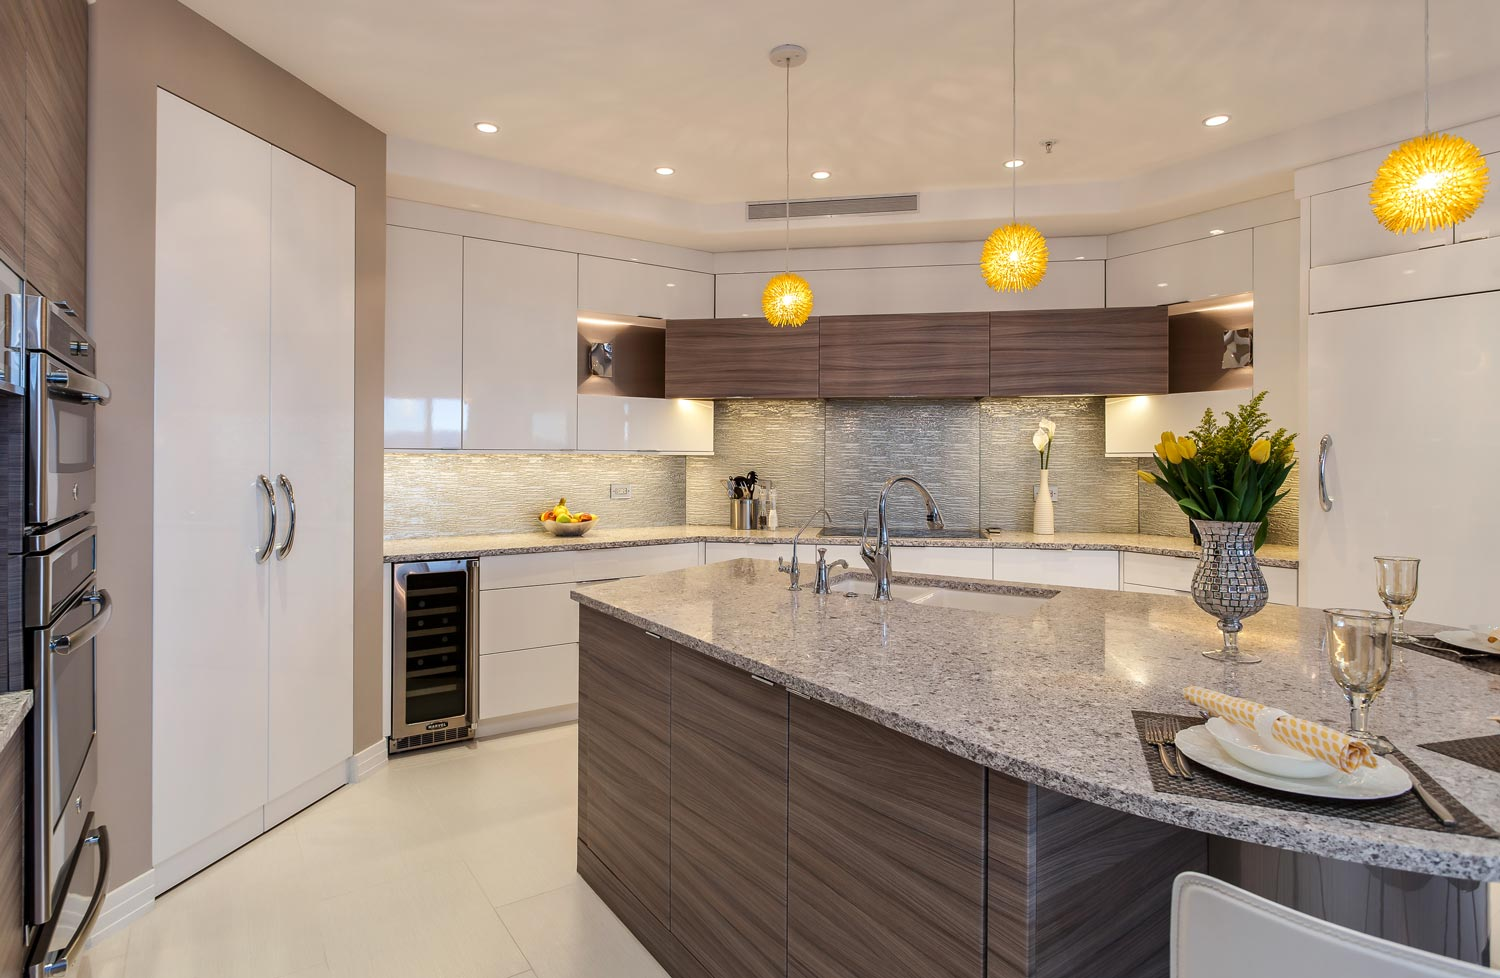 kitchen cabinets kitchen sinks denver Why are homeowners in Denver Remodeling